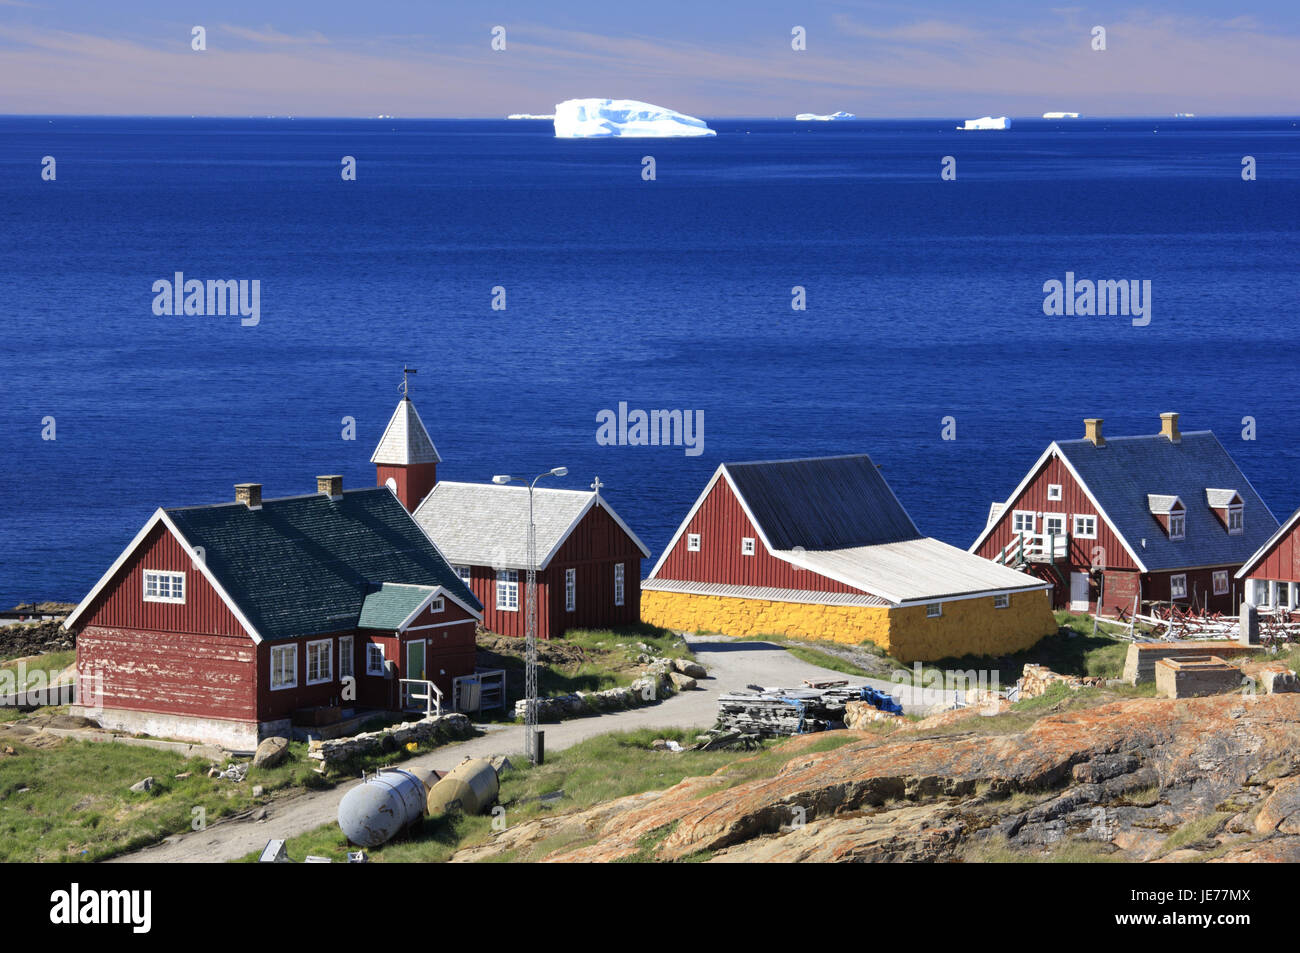 Greenland, Upernavik, residential houses, view, sea, icebergs, North-Western Greenland, coast, town, water, the - Stock Image